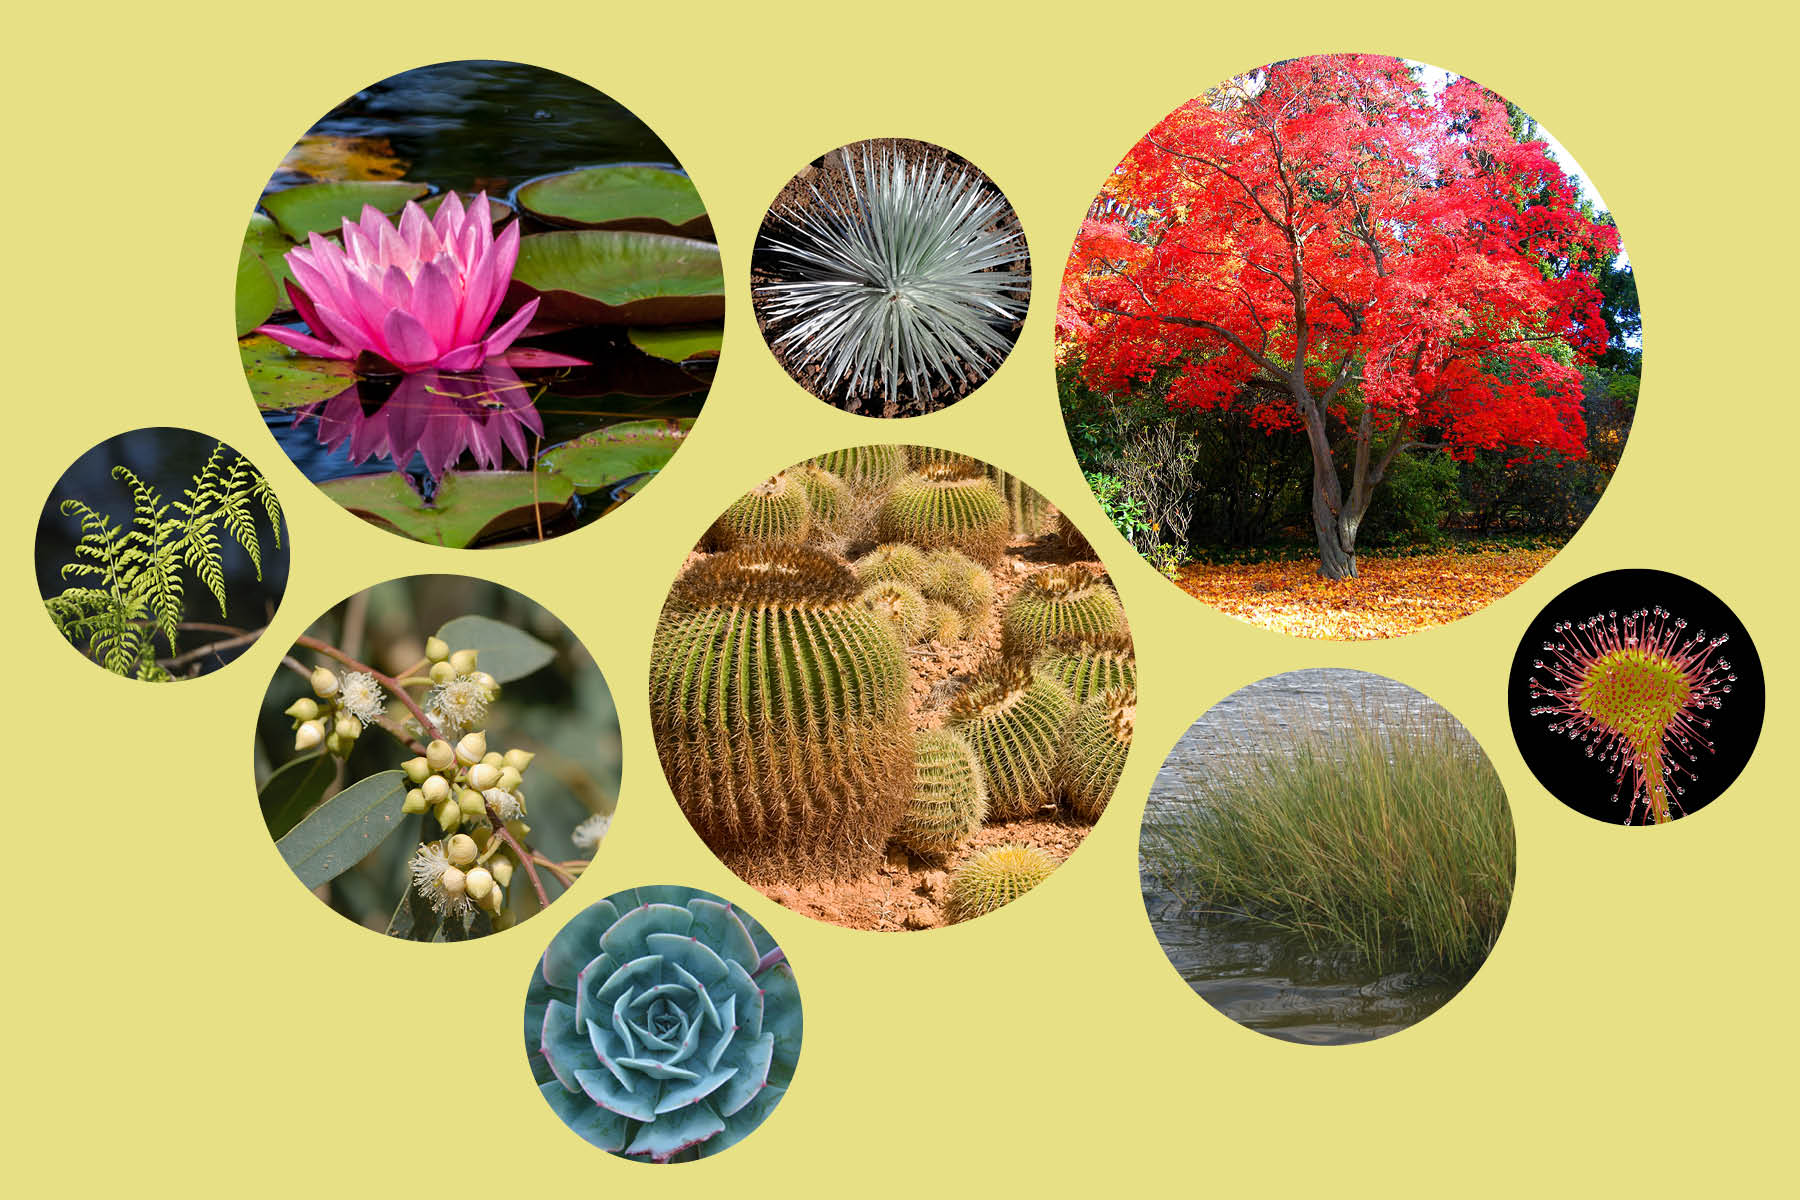 Nine examples of plants, including; ferns, succulents, cacti, water lilies, grasses and more.